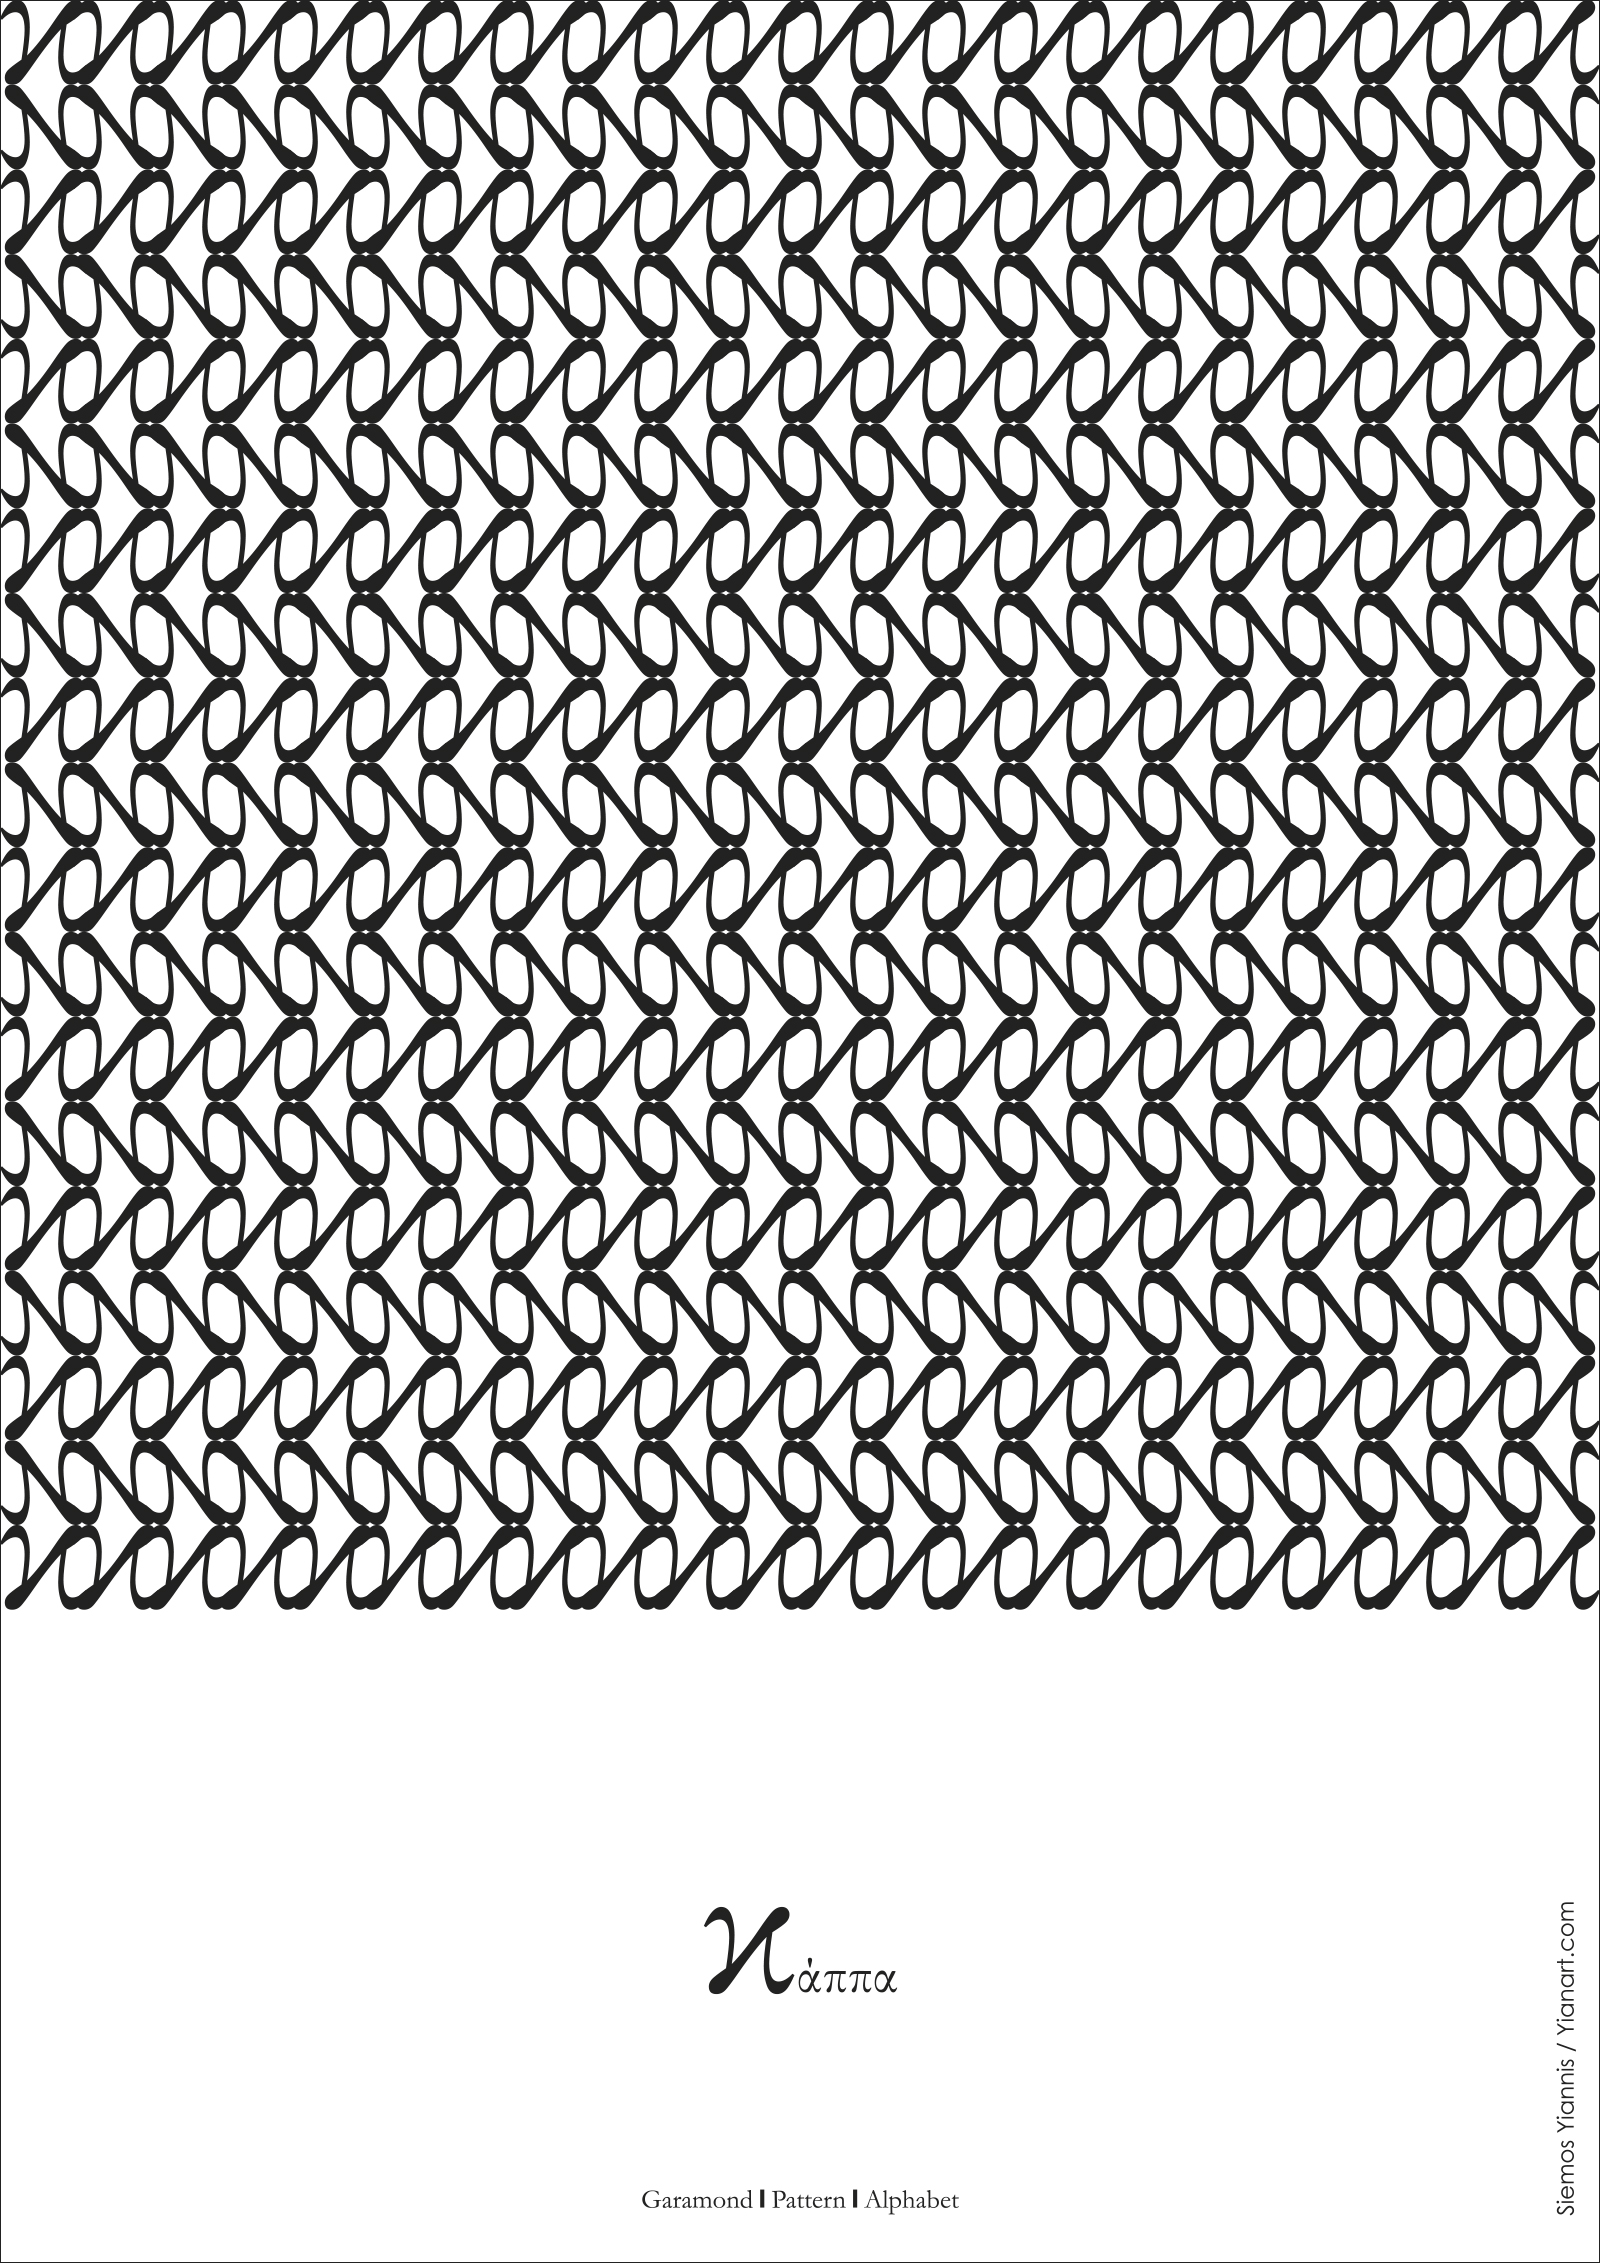 Greek Fonts Patterns_Kappa1_Yianart